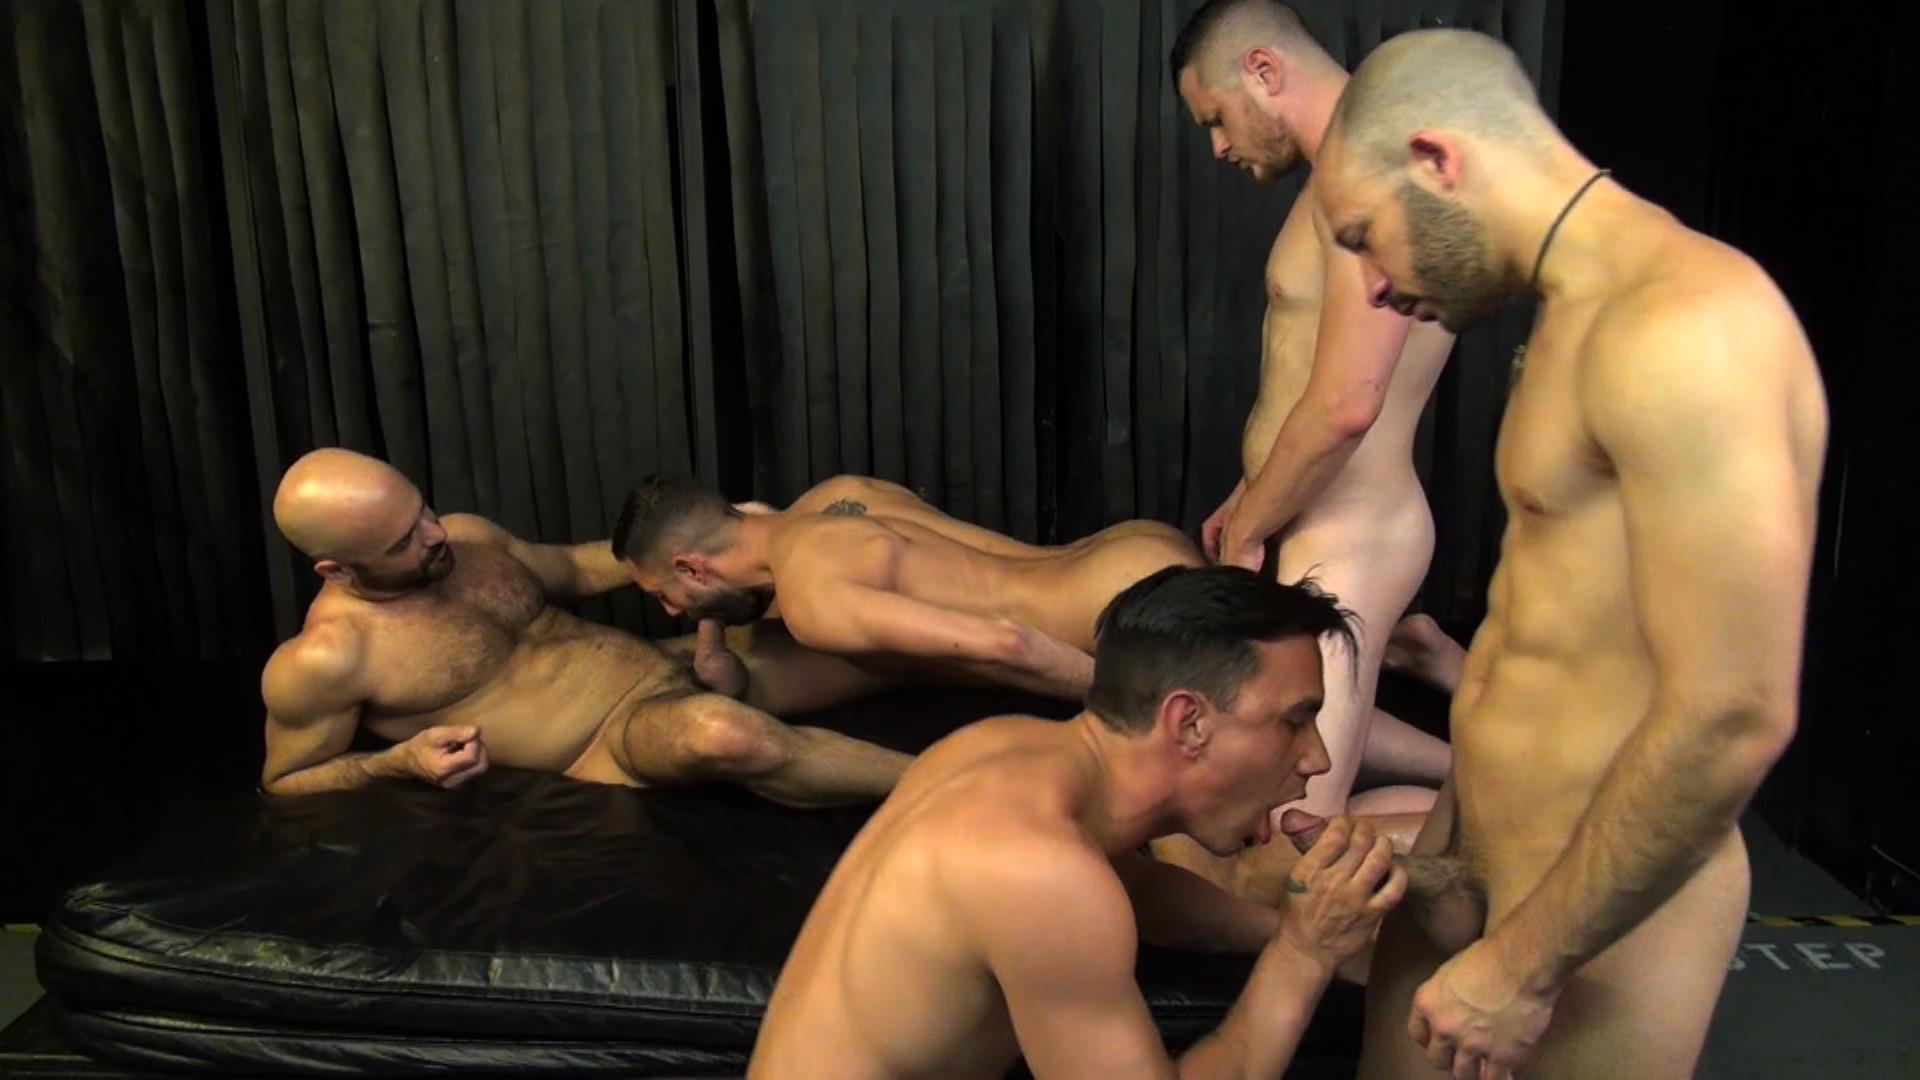 Raw Fuck Club Blue Bailey and Dylan Strokes and Adam Russo and Dean Brody and Jay Brix Bareback Orgy Amateur Gay Porn 1 Adam Russo Getting Double Penetrated At A Bareback Sex Party